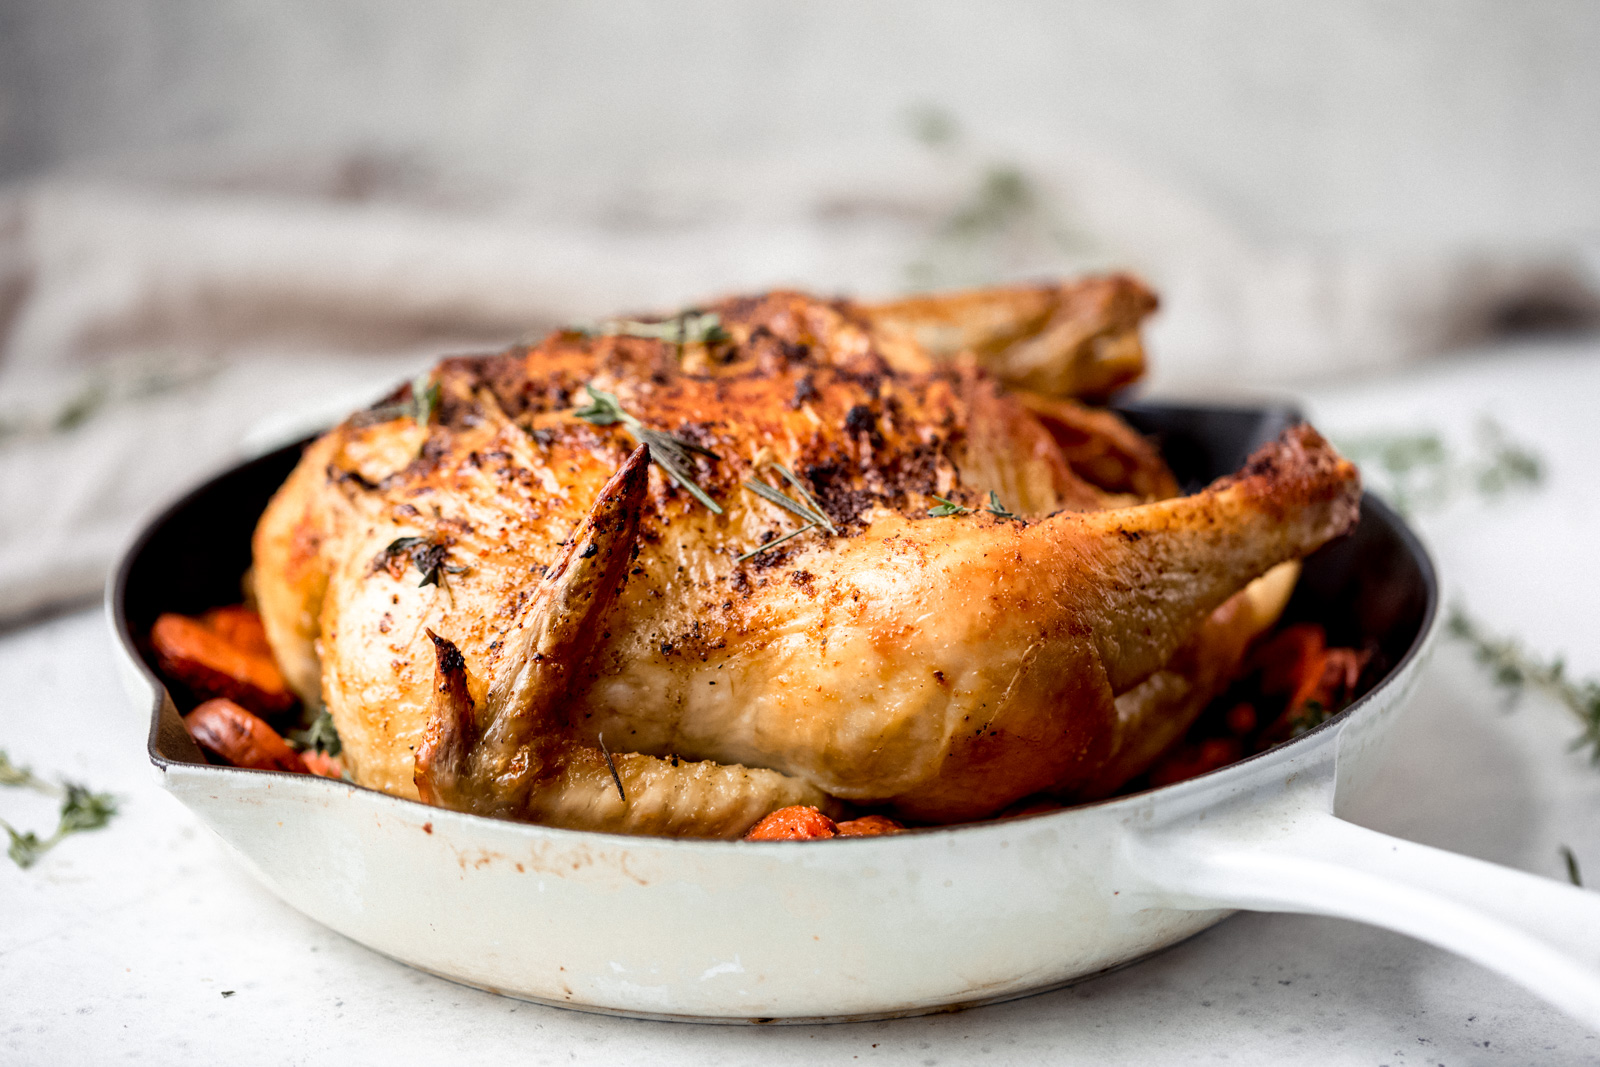 Learn how to make a delicious and easy whole roasted chicken. You just a need a few ingredients, a good roasting pan or skillet and a little over an hour! Makes juicy meat that's perfectfor serving as is or shredding and adding to soups, stews, enchiladas or tacos! Yum.